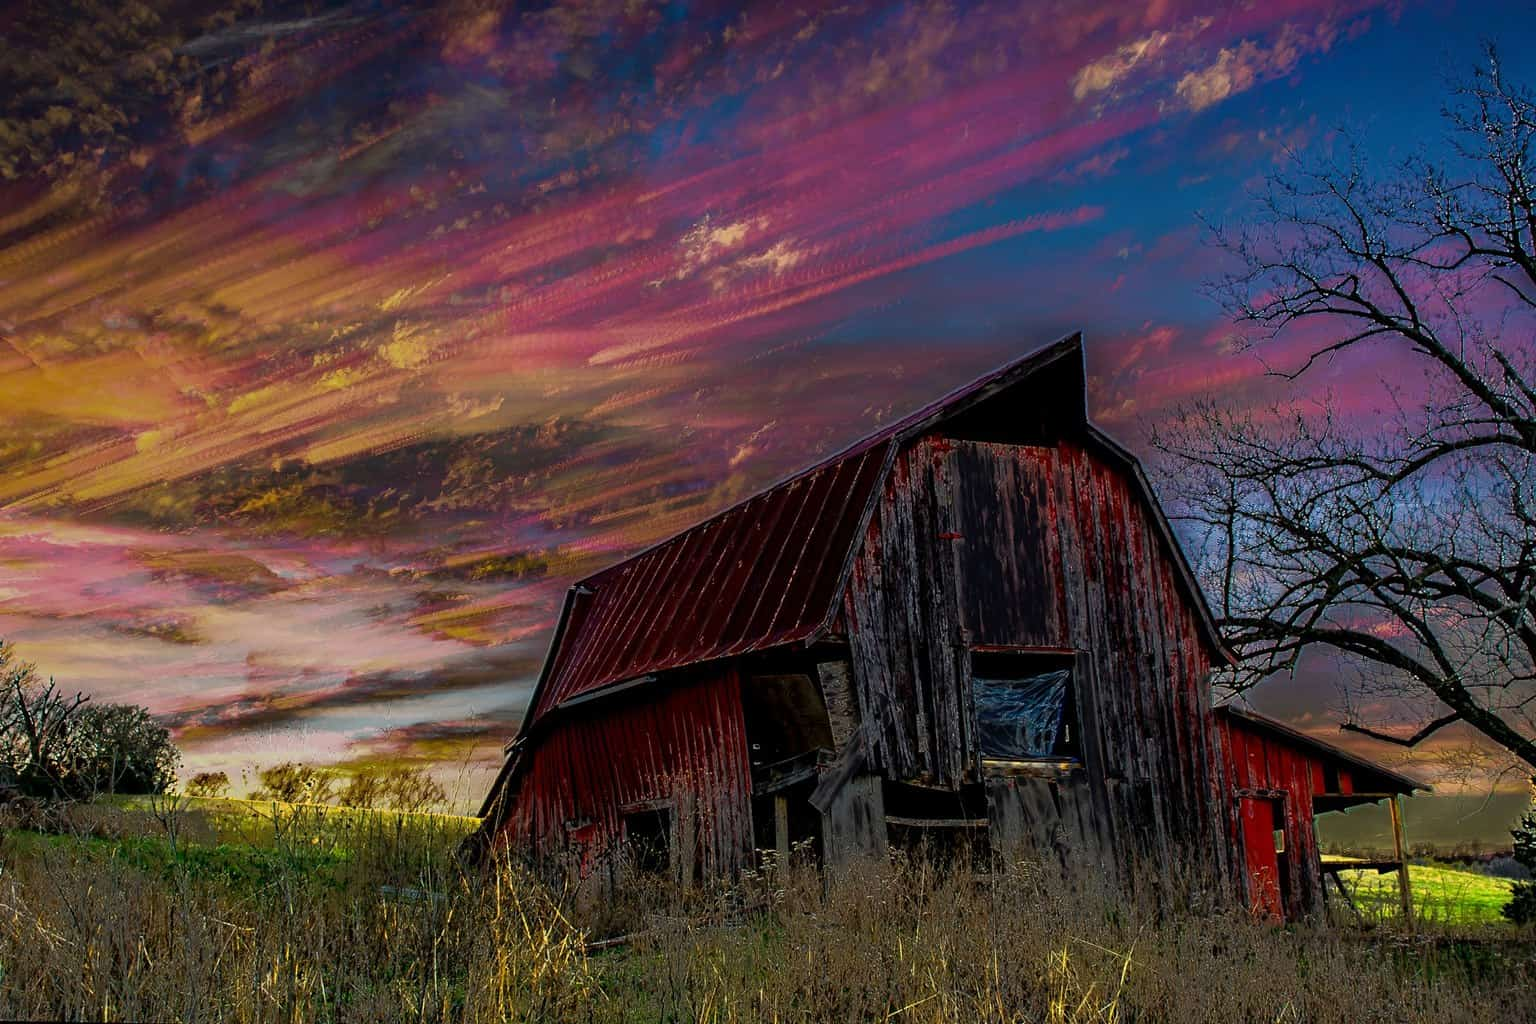 Playing around with this barn pic again I decided to stack all 219 images as the Sun was setting behind the barn, you can see the motion and show the colors change in the clouds as time passes.